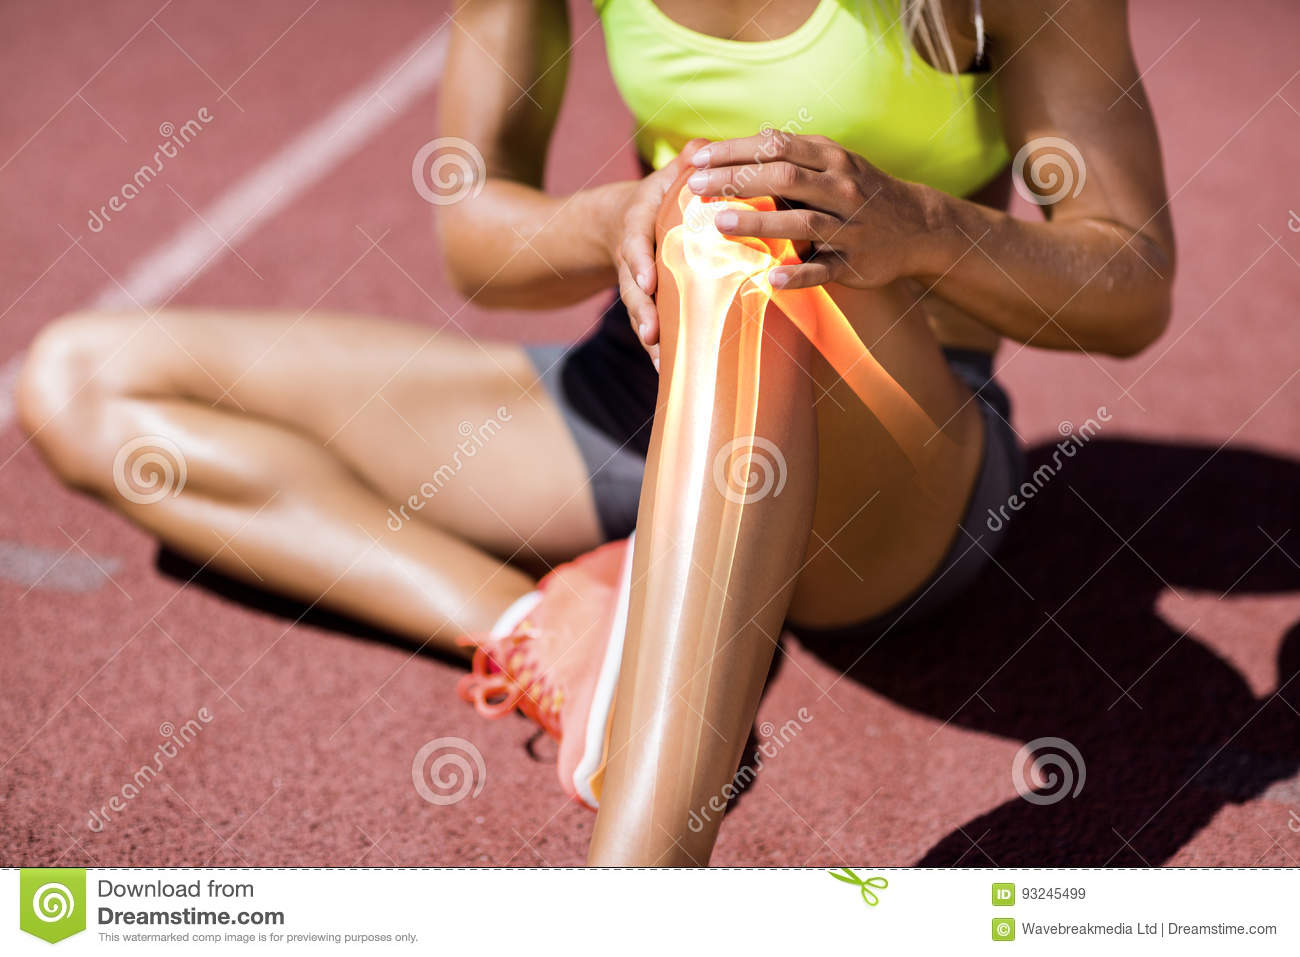 Low section of female athlete suffering from knee pain